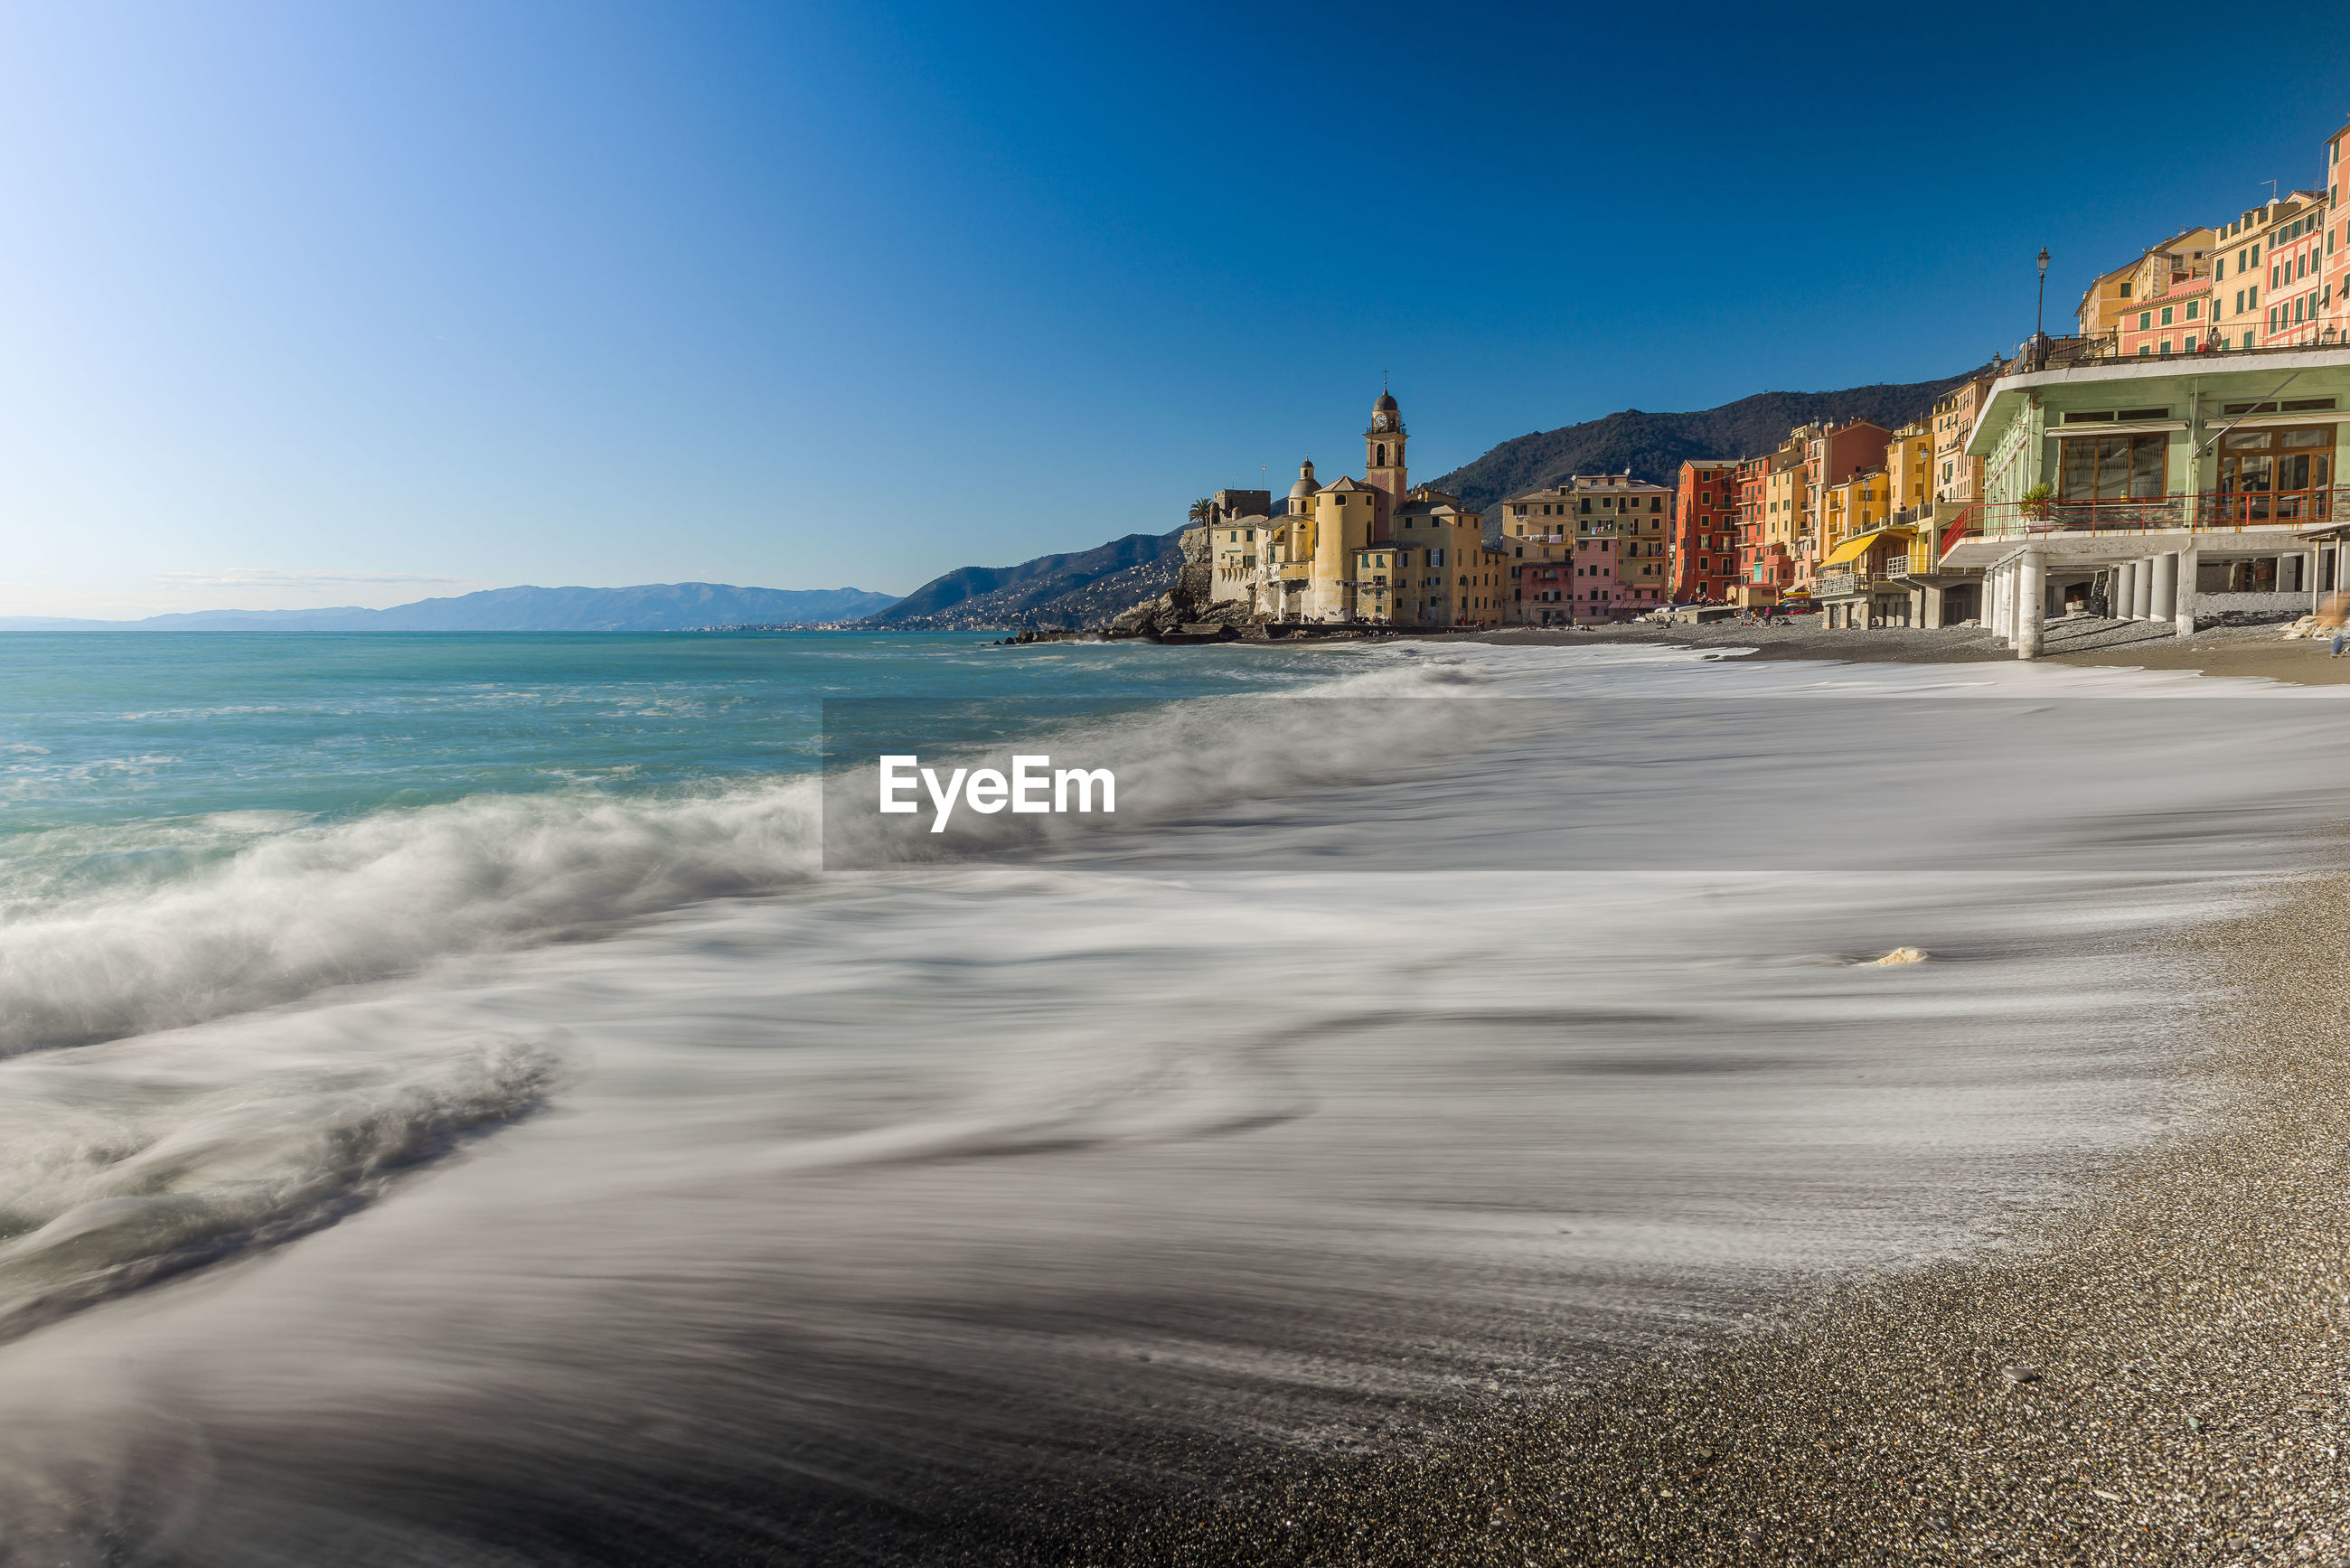 Scenic view of beach by city against clear blue sky